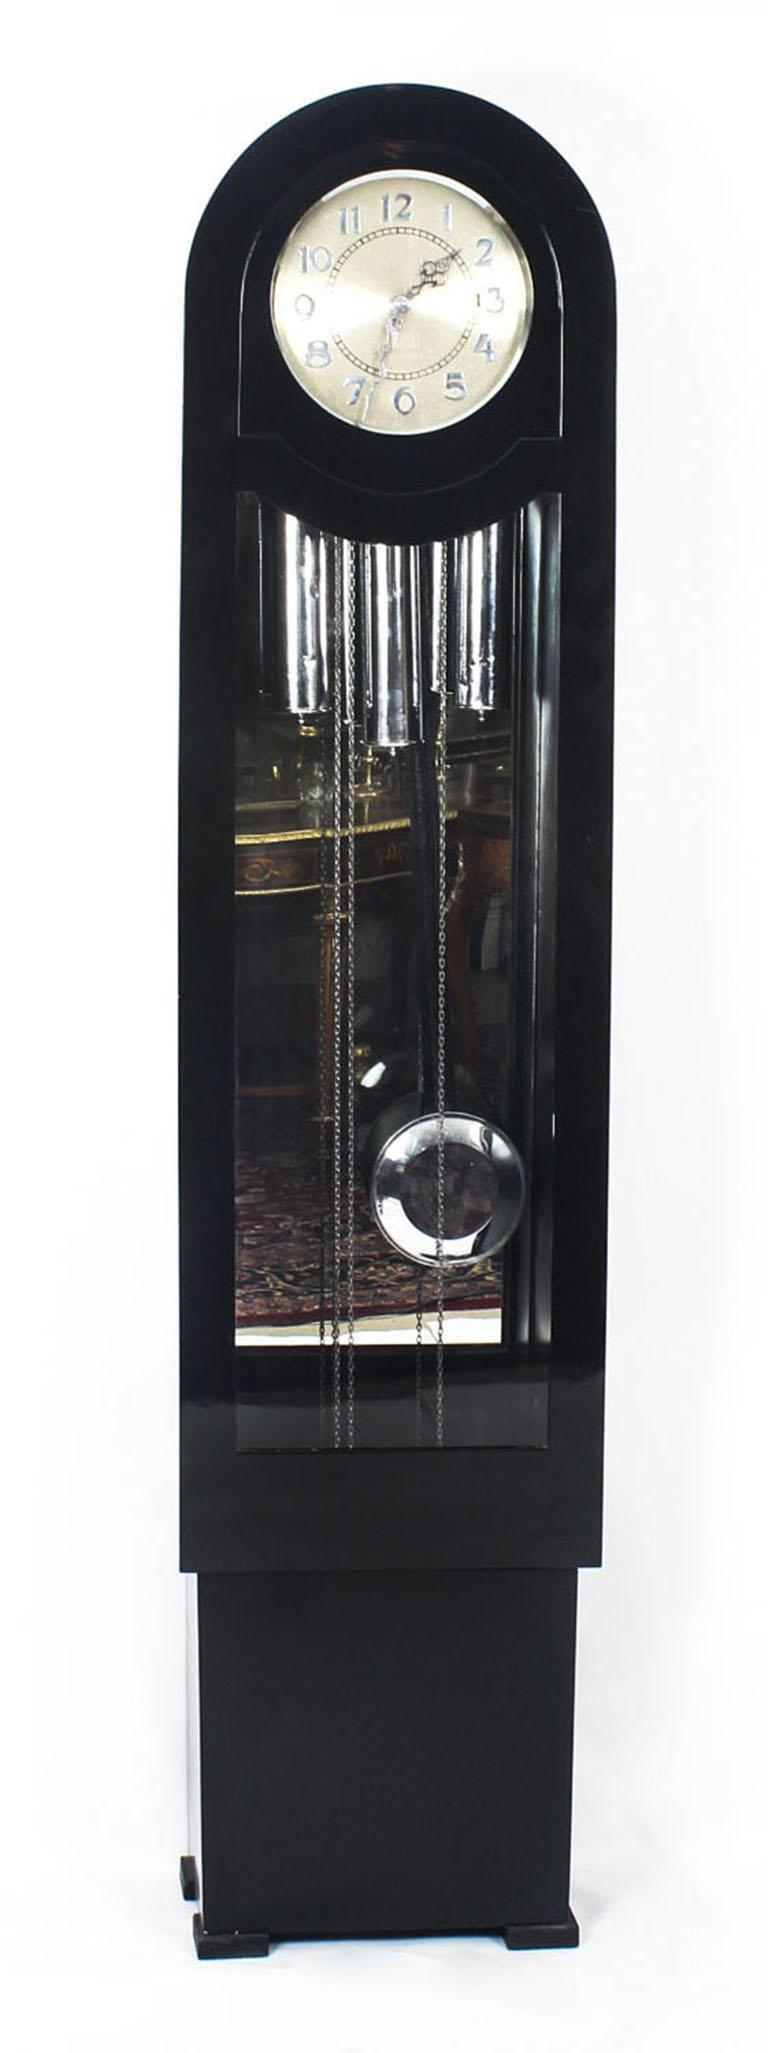 An elegant English Art Deco black lacquer Westminster chiming longcase clock made in London, circa 1935 in date.